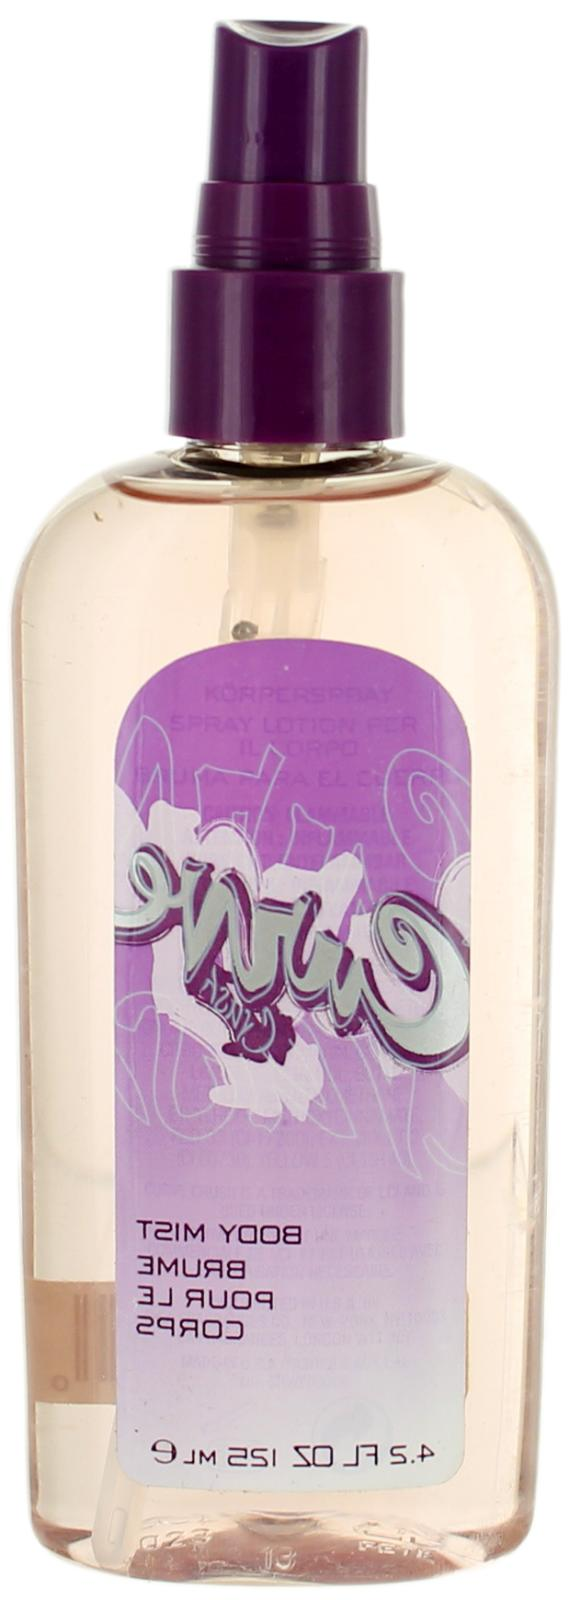 curve crush by for women body mist